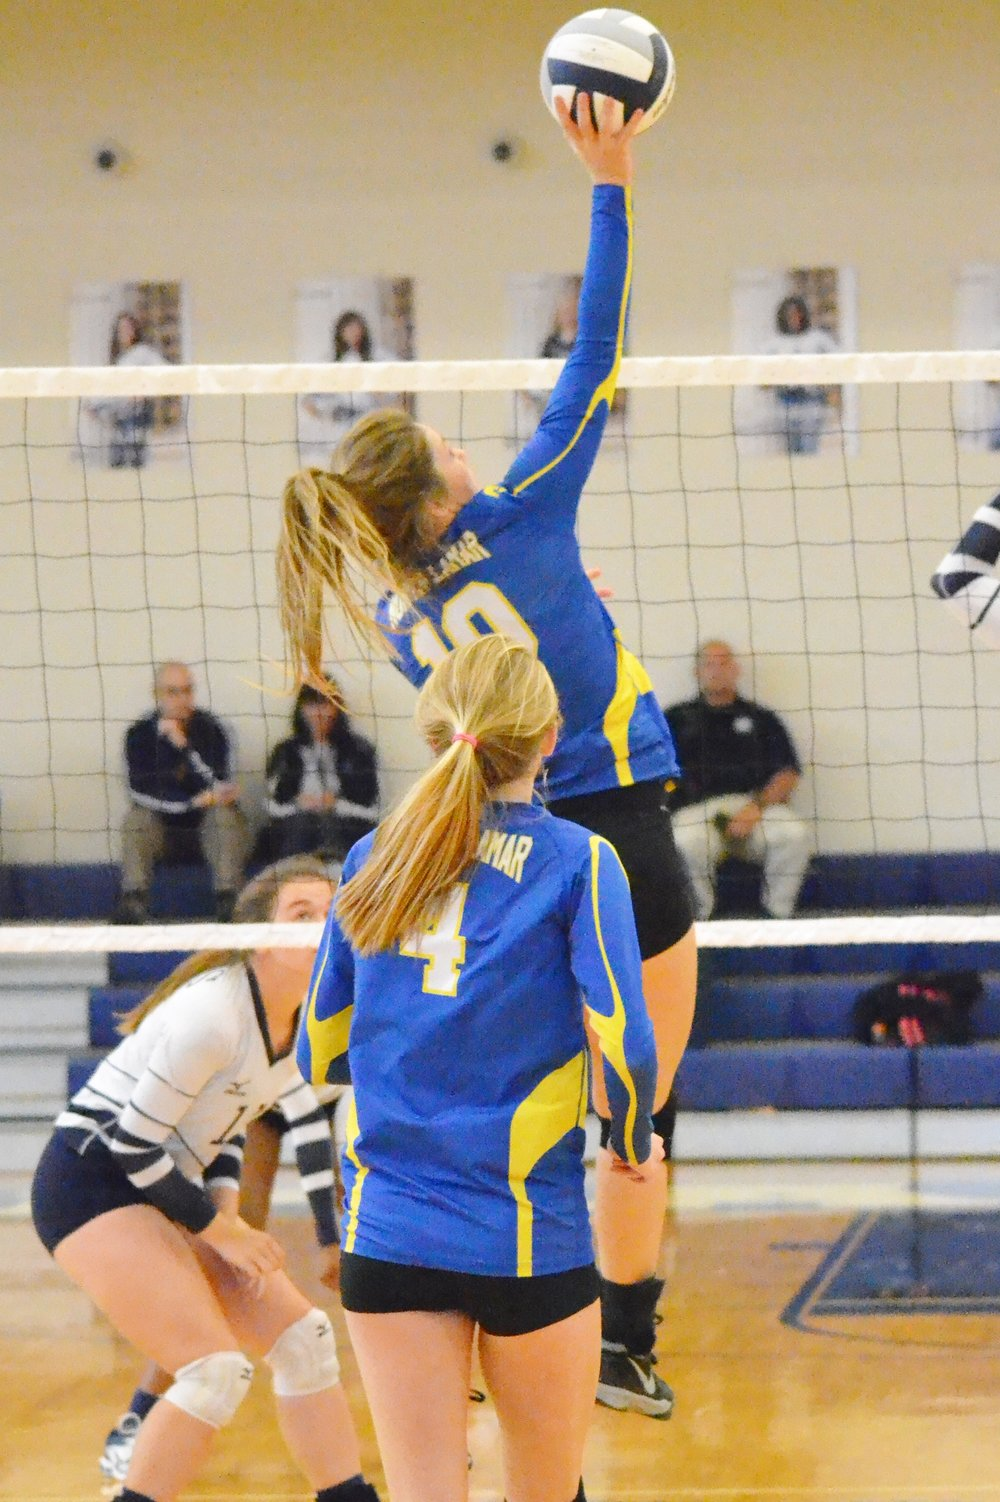 (Photo by Beverly White) Bailee Nickerson (10) hitting the ball over the net while Karlie Ewell (4) looks on.